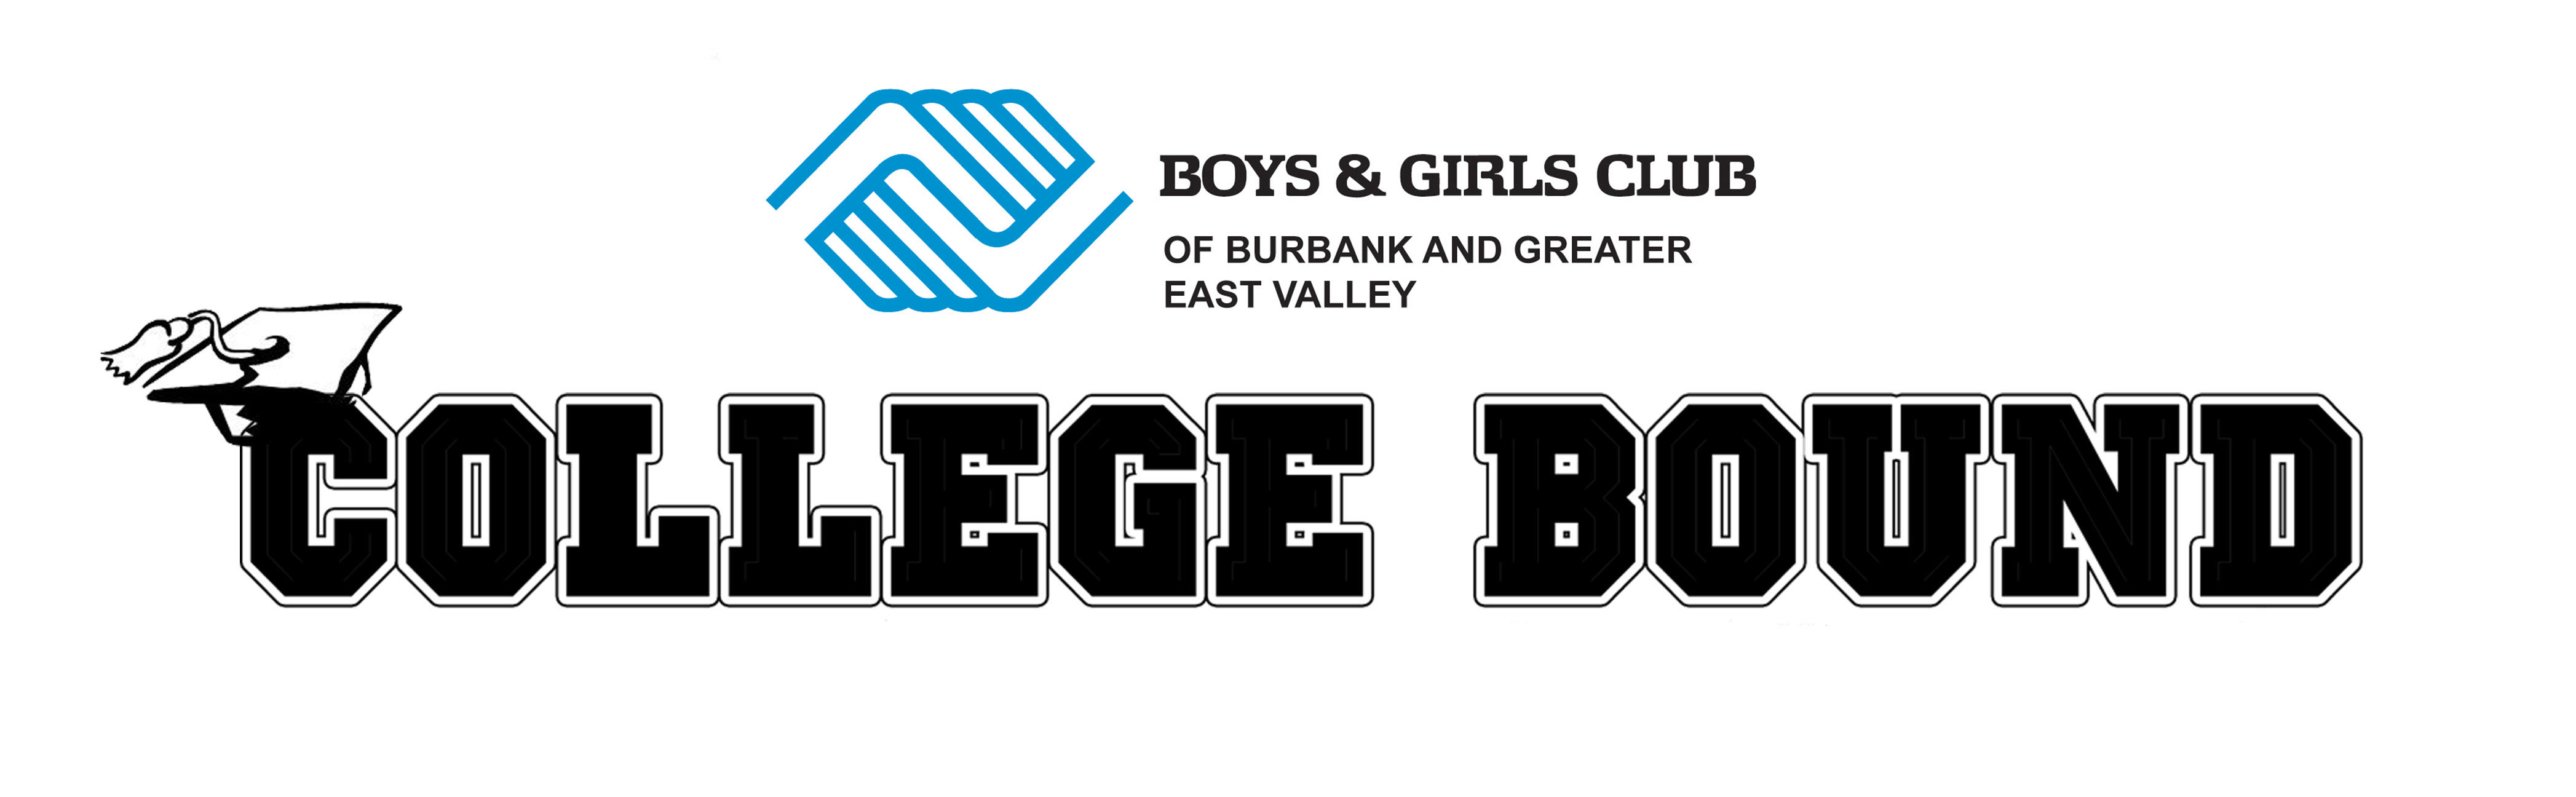 Collegebound Boys And Girls Club Of Burbank And Greater East Valley